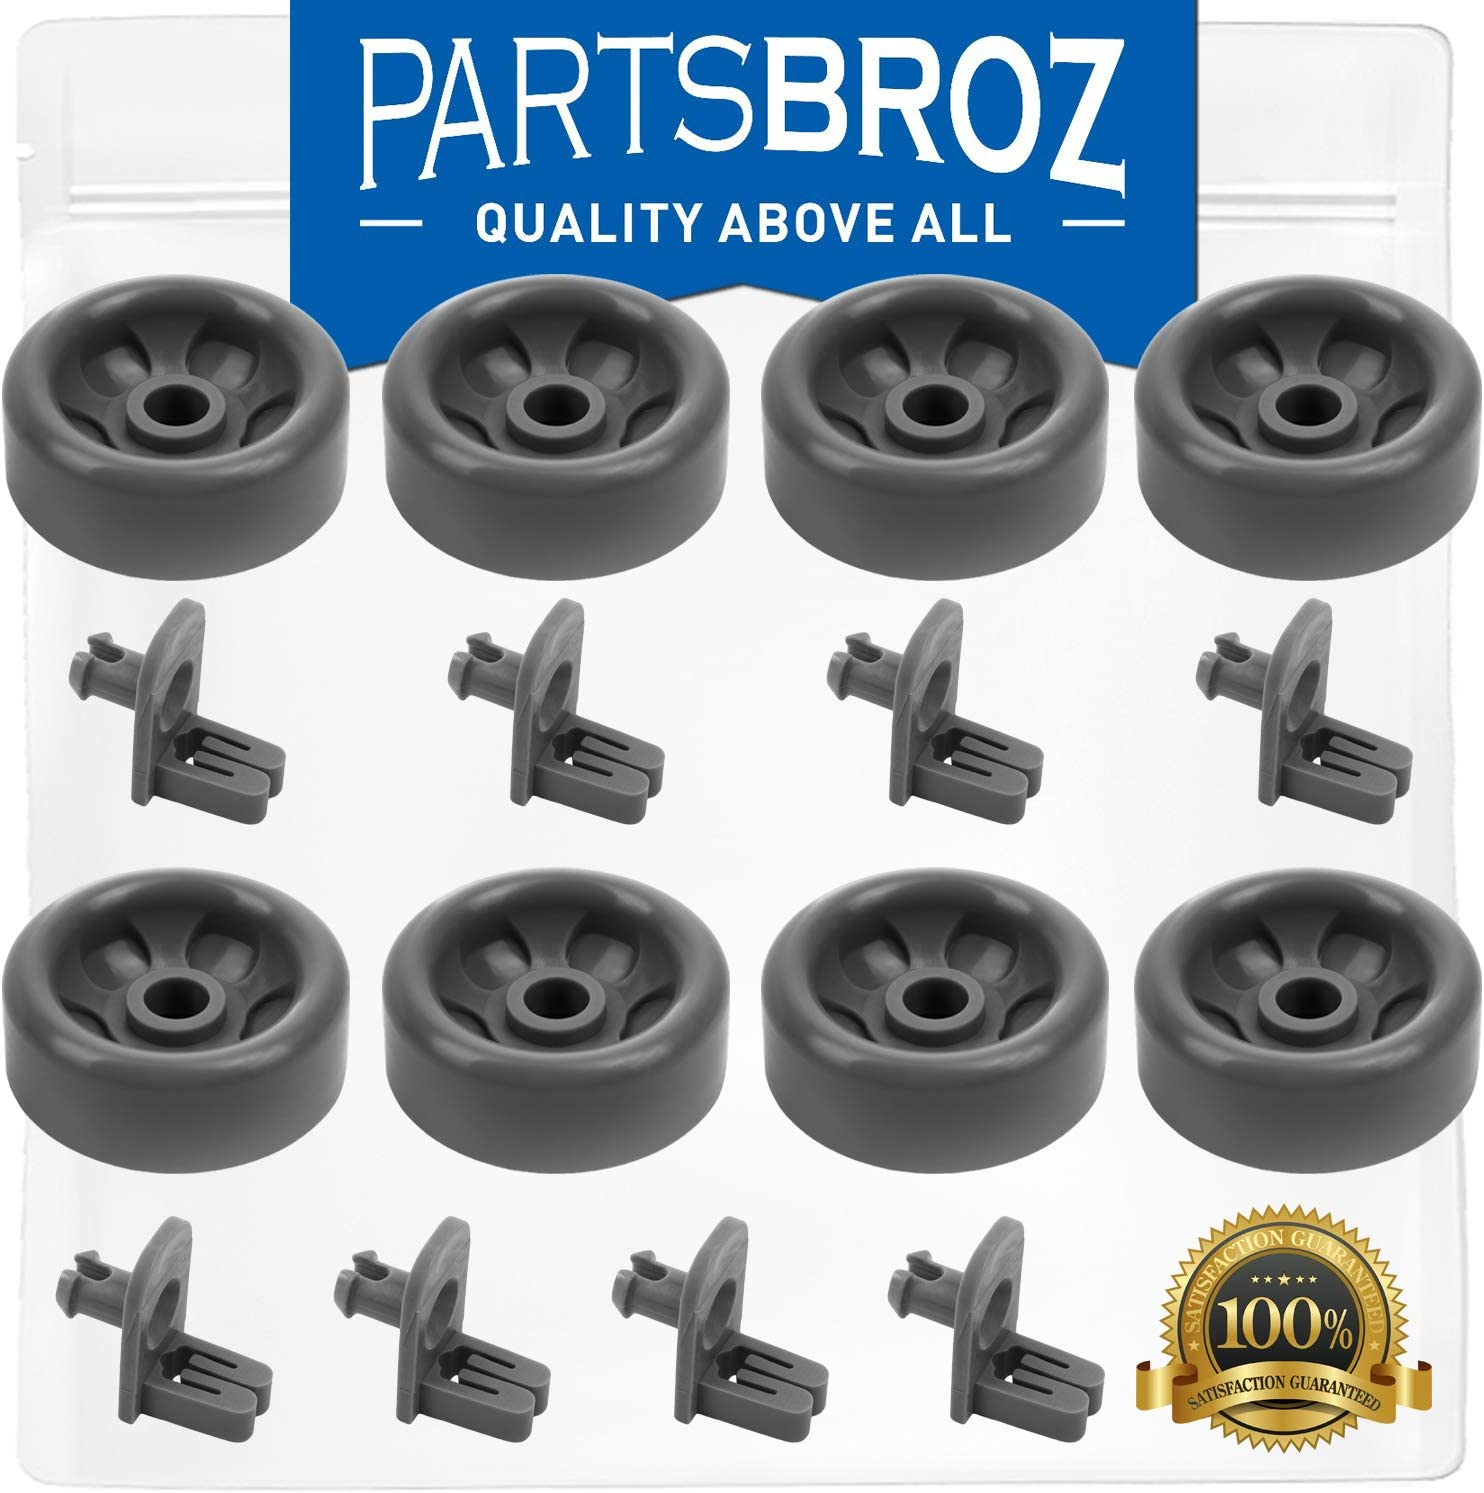 WD35X21041 (Pack of 8) Lower Dishrack Roller & Axle Kit for GE Dishwashers by PartsBroz - Replaces Part Numbers AP5986366, WD12X10277, WD12X10136, PS11725221, WD12X10107, WD12X10126, WD12X10261